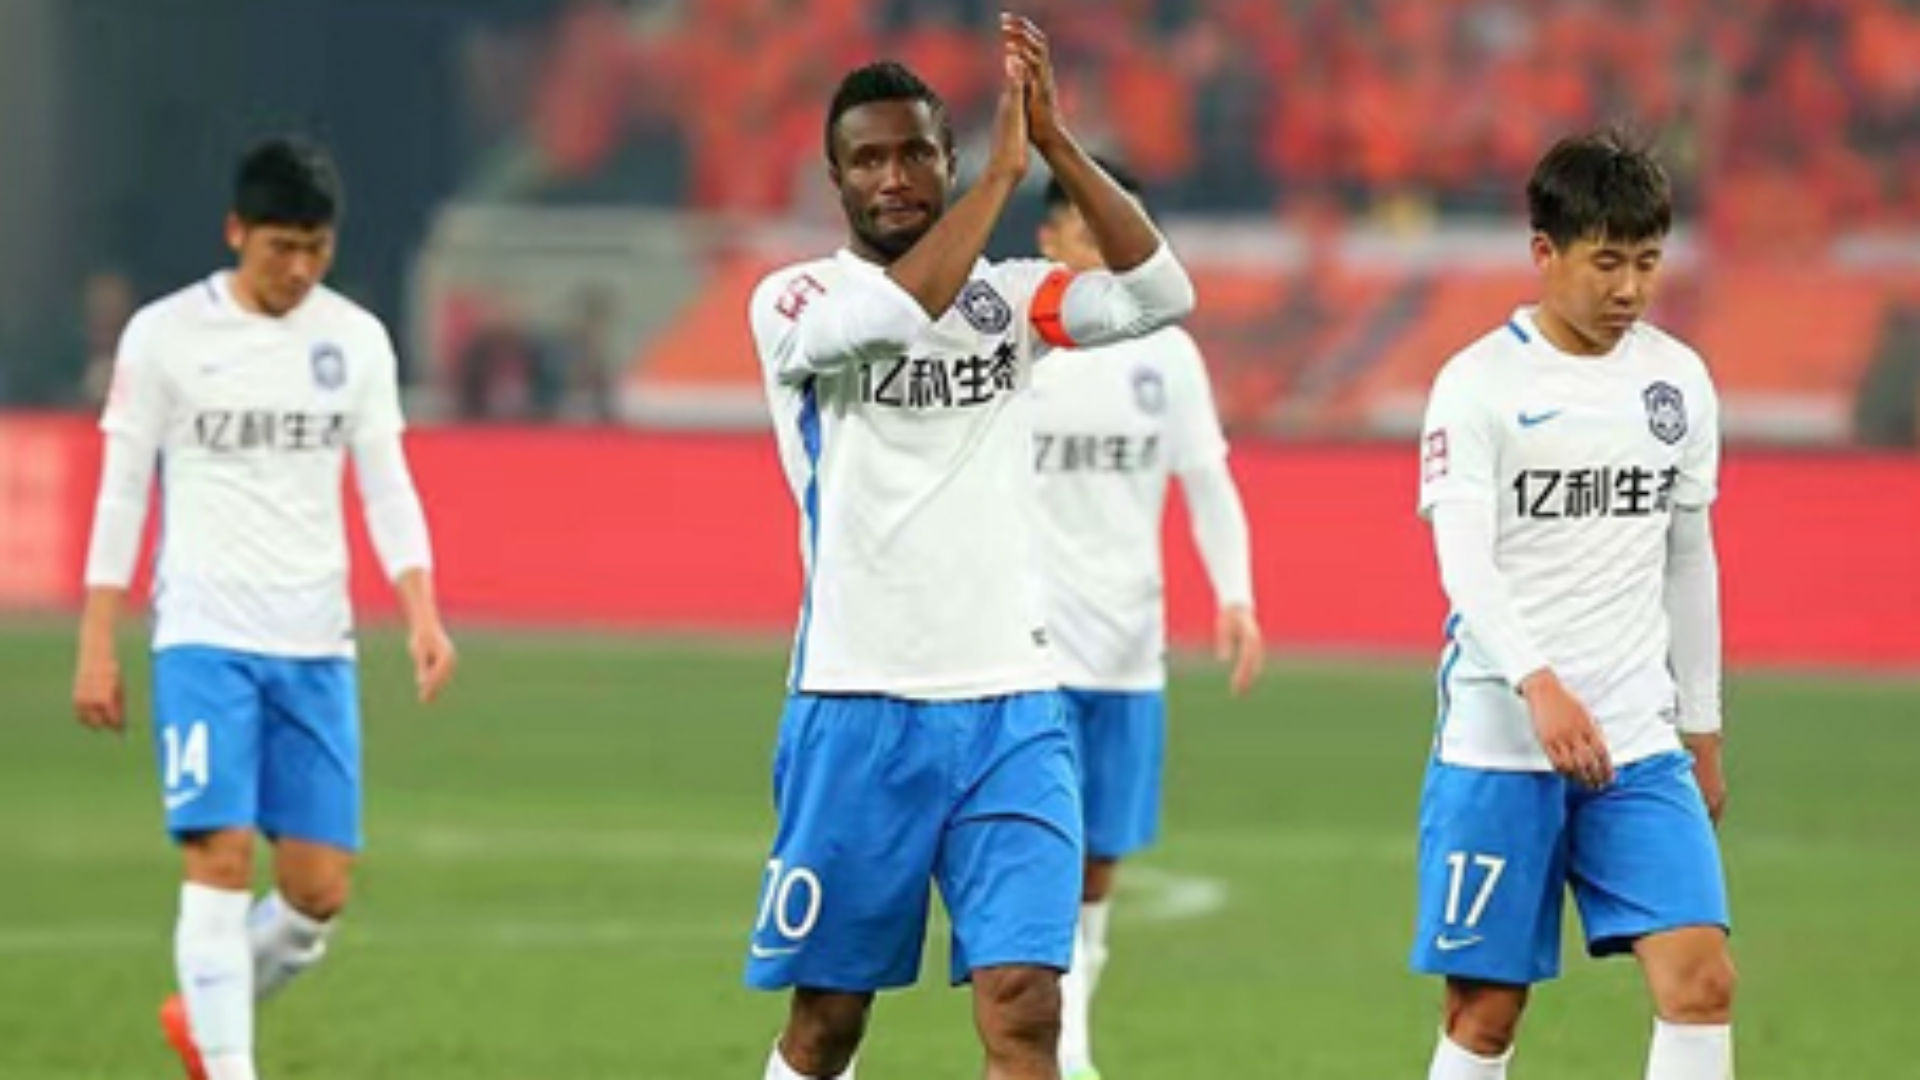 Mikel, Ighalo lose in Chinese Super League opener